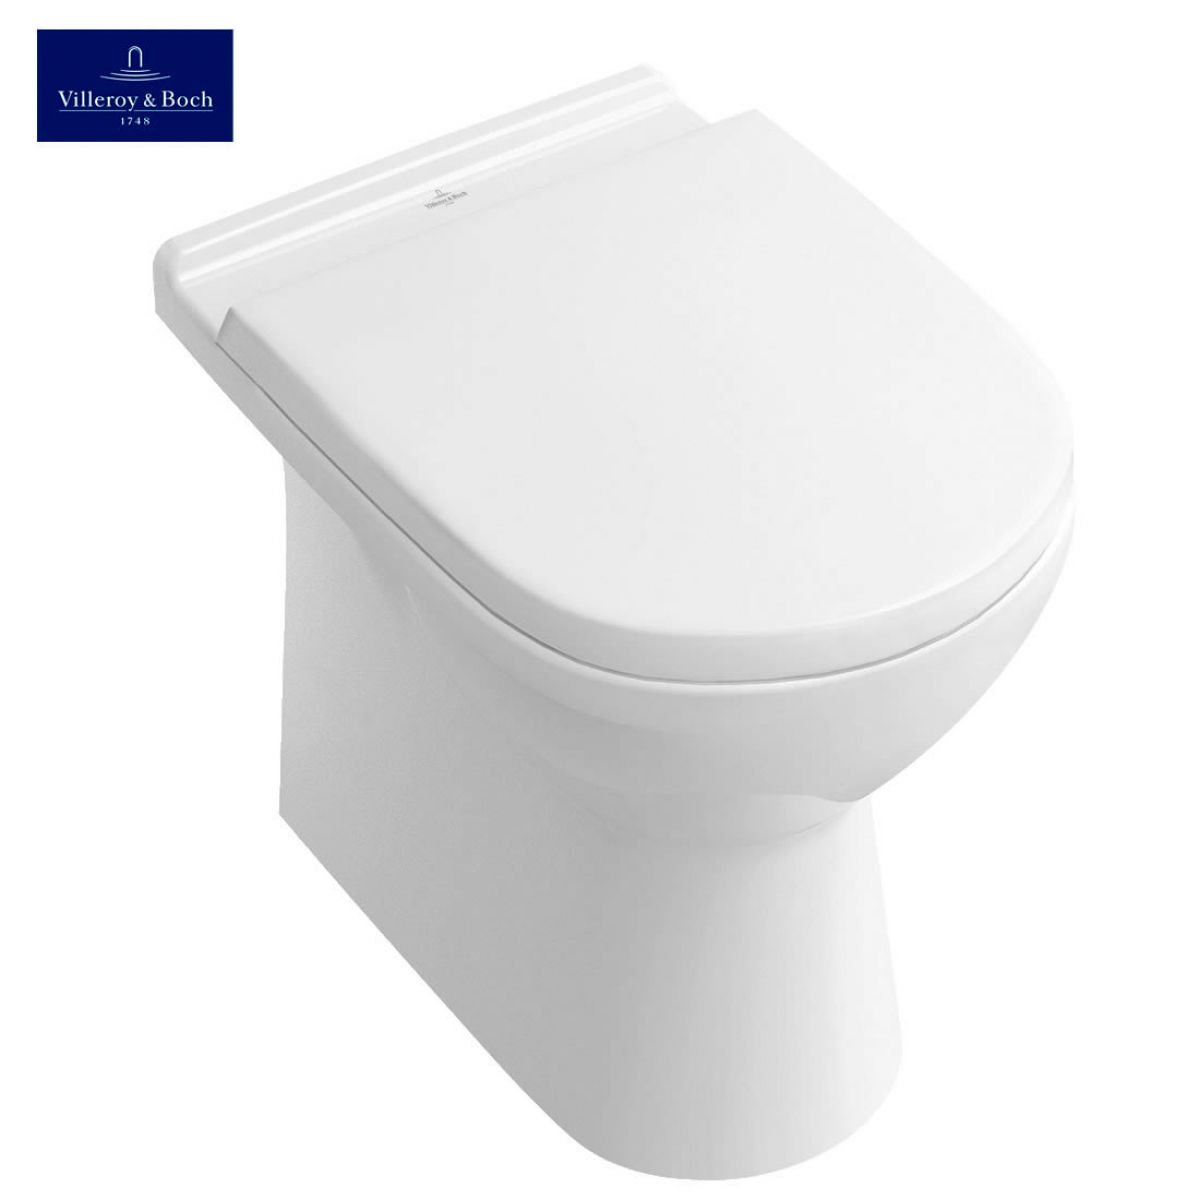 villeroy boch o novo back to wall toilet uk bathrooms. Black Bedroom Furniture Sets. Home Design Ideas